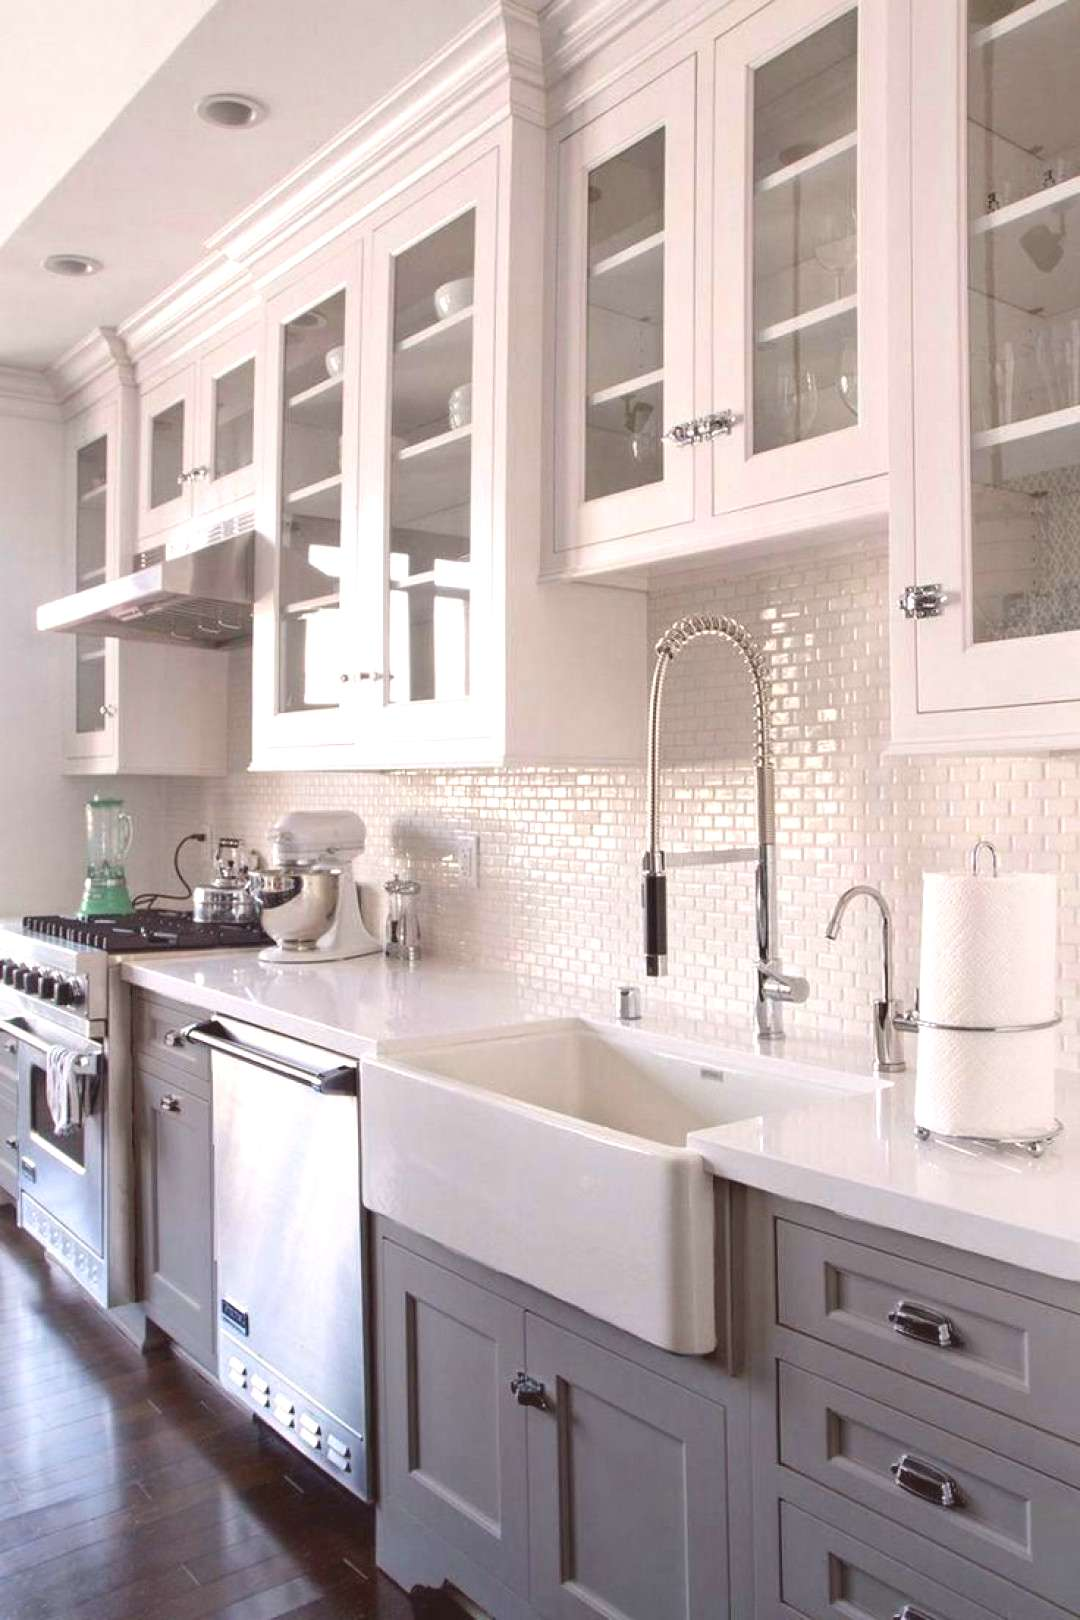 The 20 most popular color ideas for kitchen cabinets (trends for 2019) ...#bluegrey